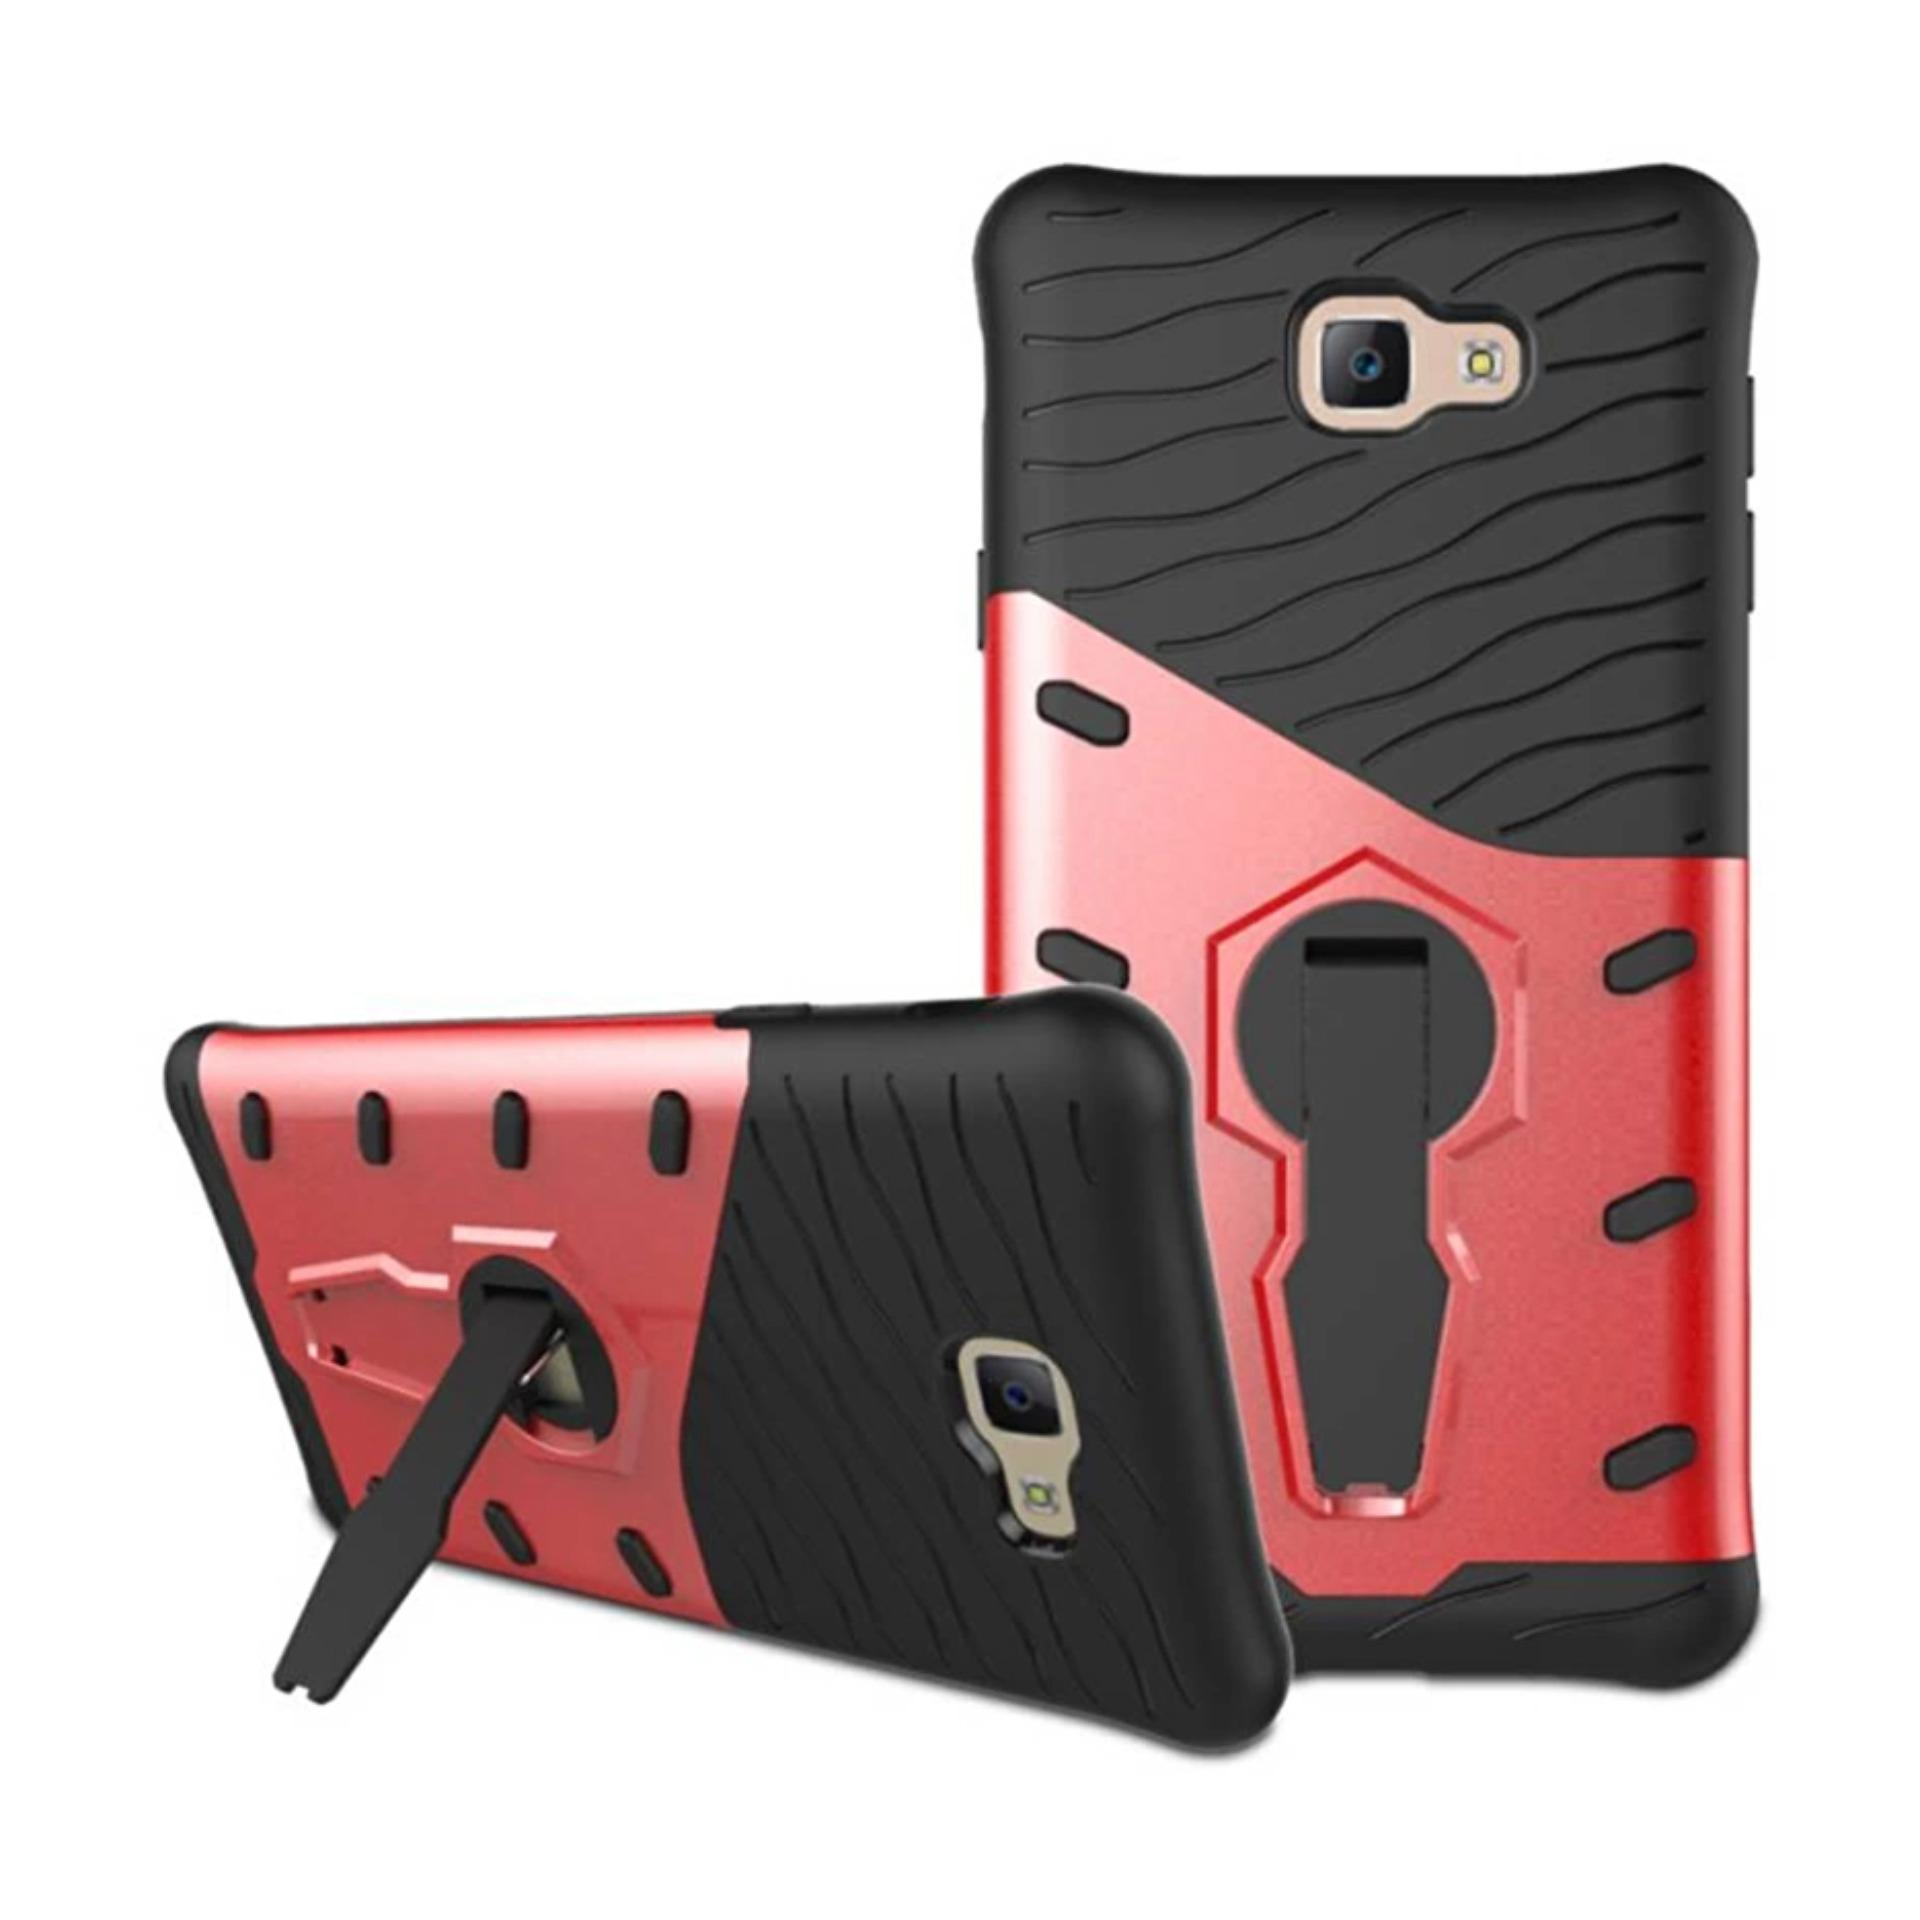 ... Casing for Samsung Galaxy J7 Prime / On7 2016 Case [360 Kickstand Holder] PC ...